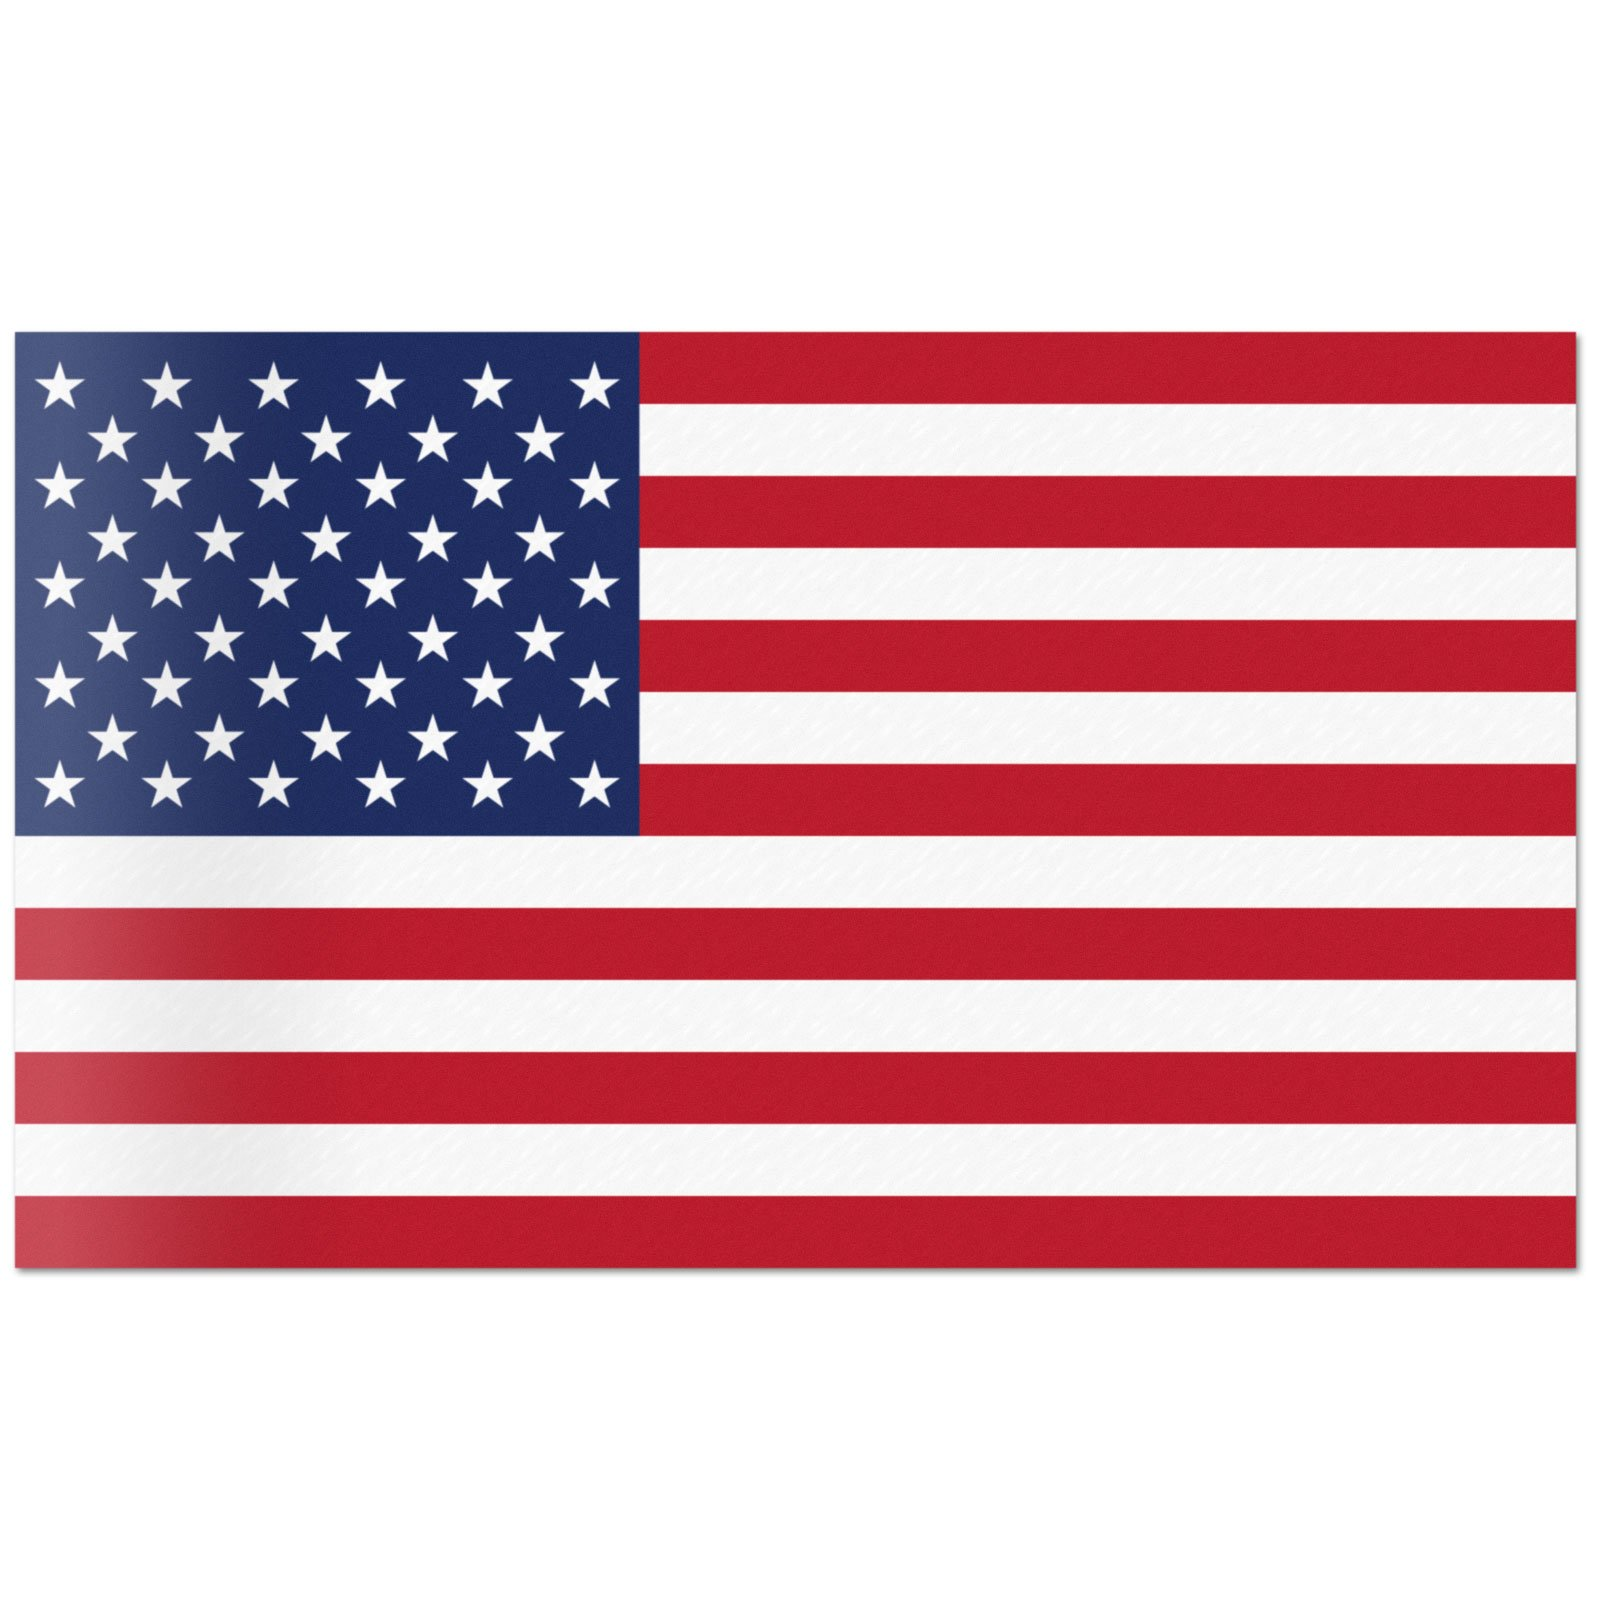 Red Hound Auto American Flag Wall Graphic Extra Large Removable 2 Feet Wide 24 Inch Premium Made in USA Vinyl Peel and Stick Decal Sticker